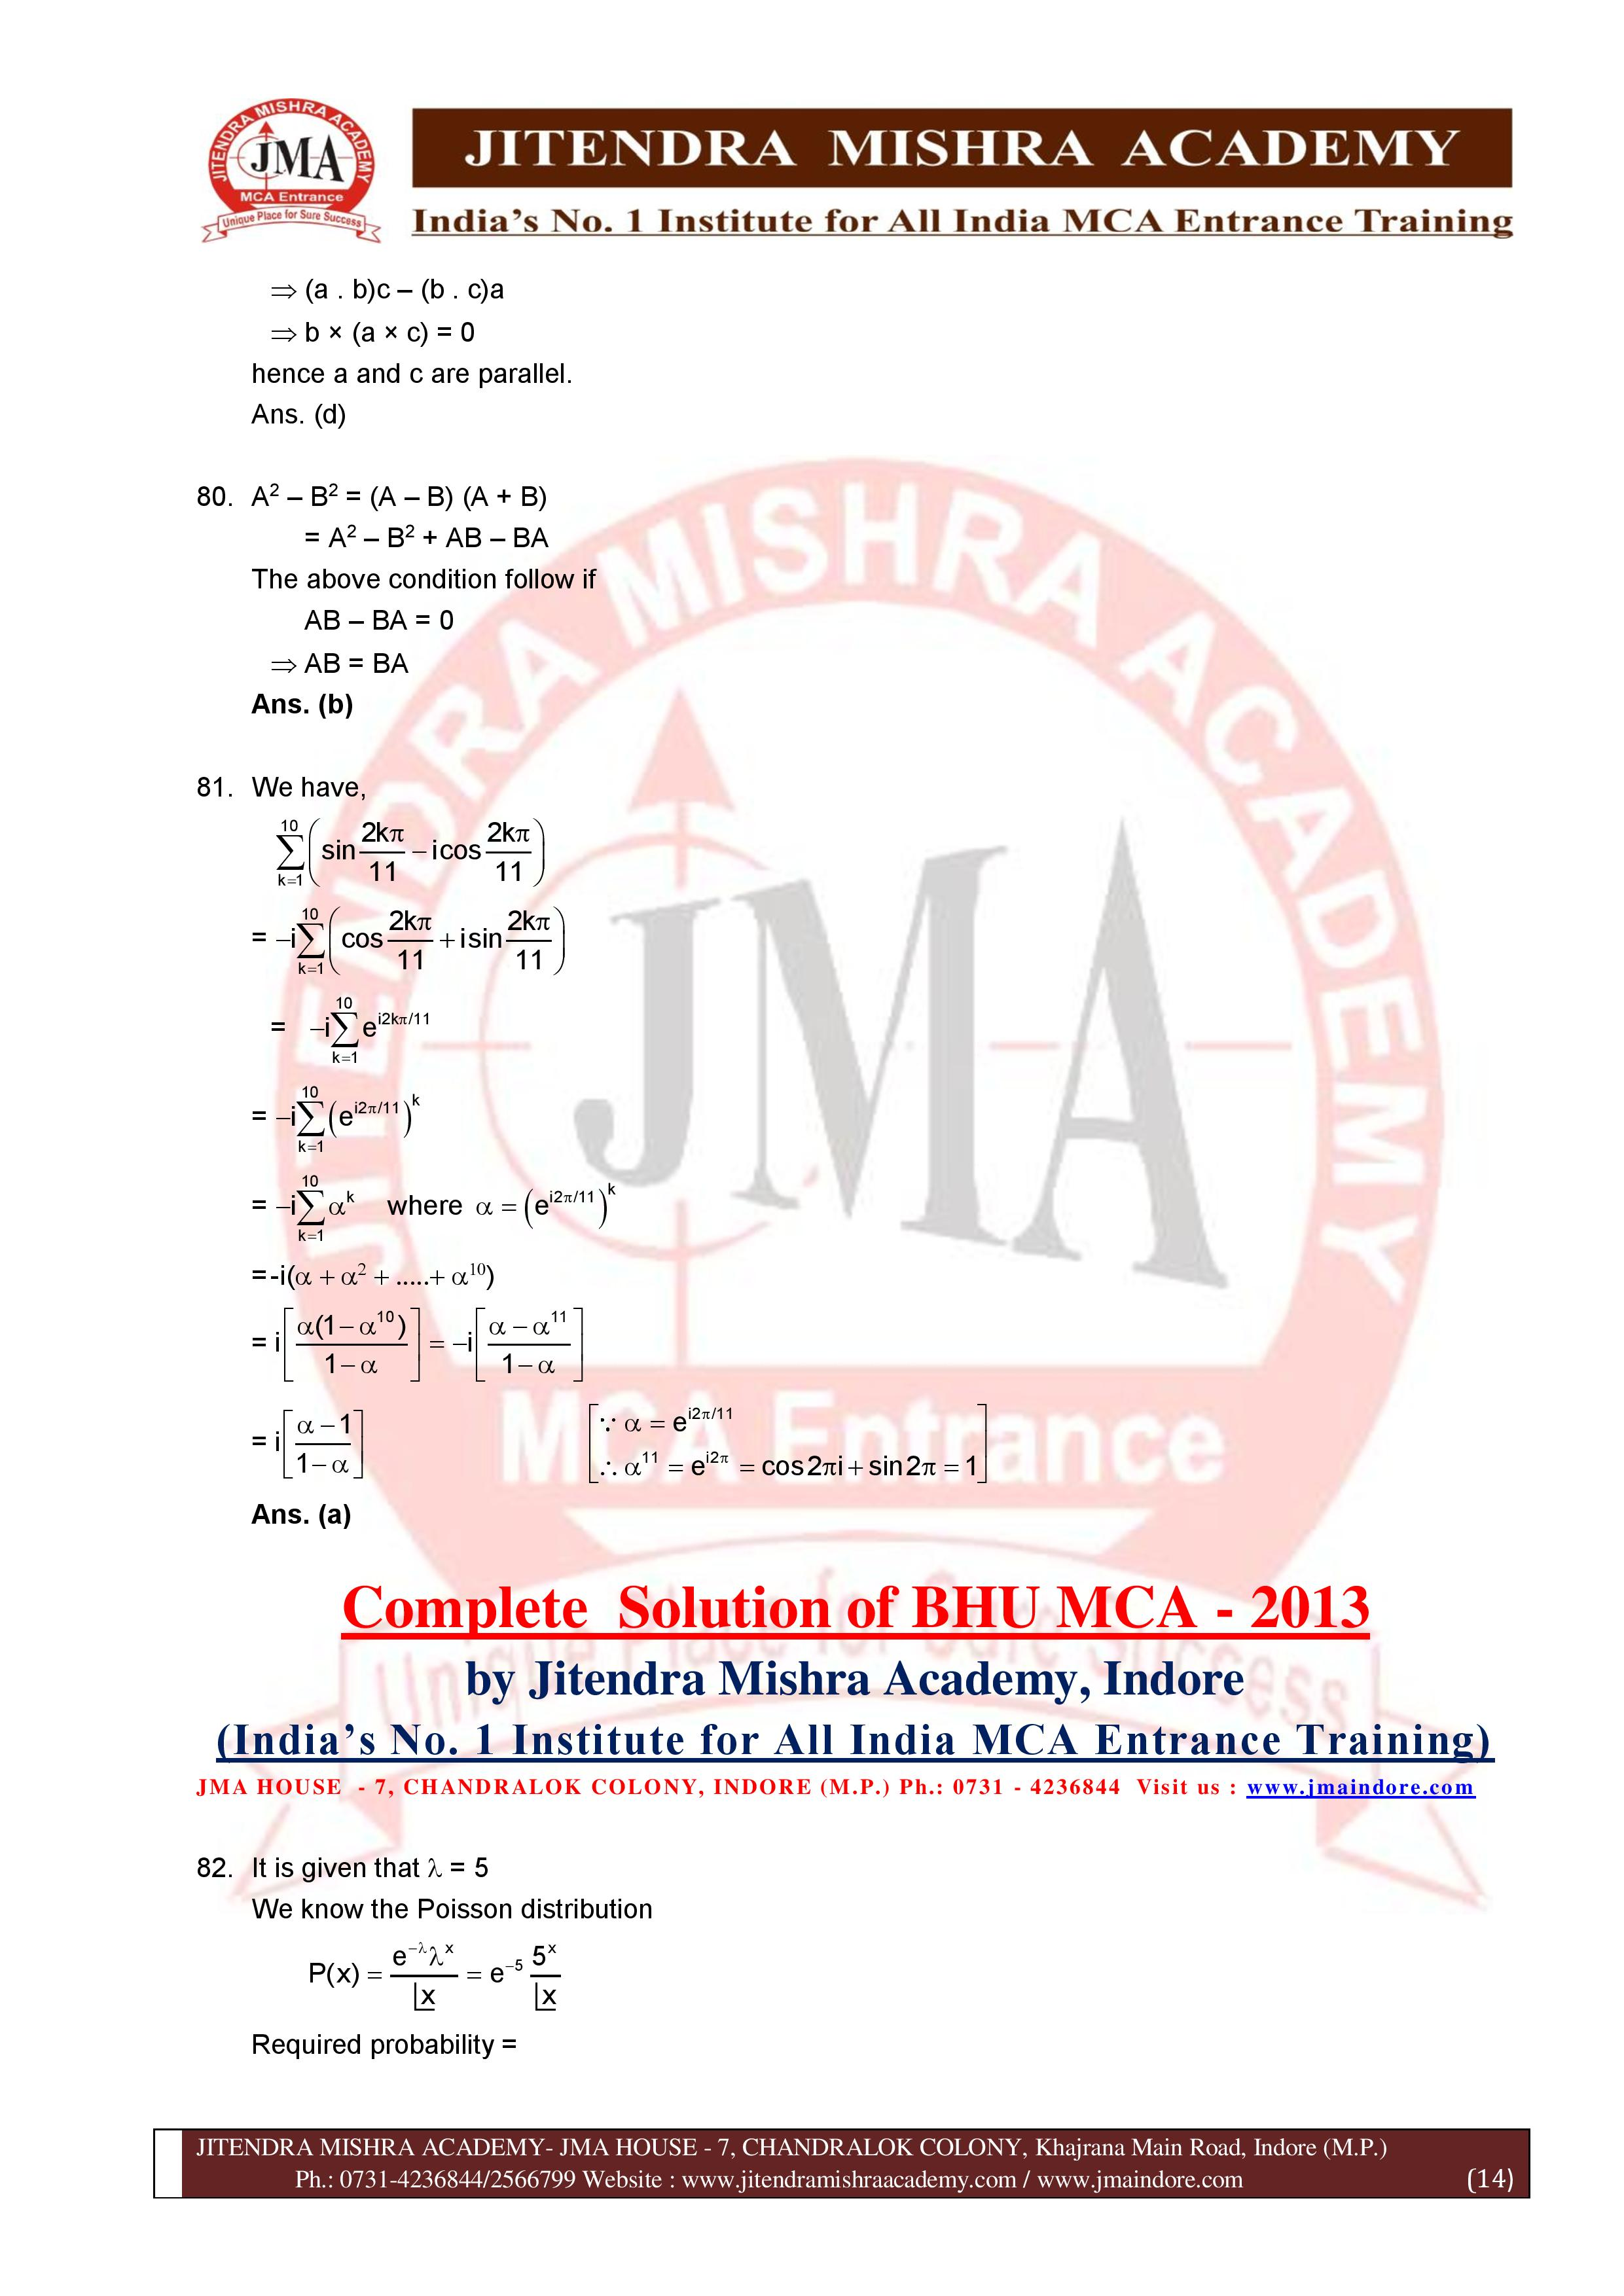 BHU 2013 SOLUTION (SET - 3) (06.07.16)-page-014